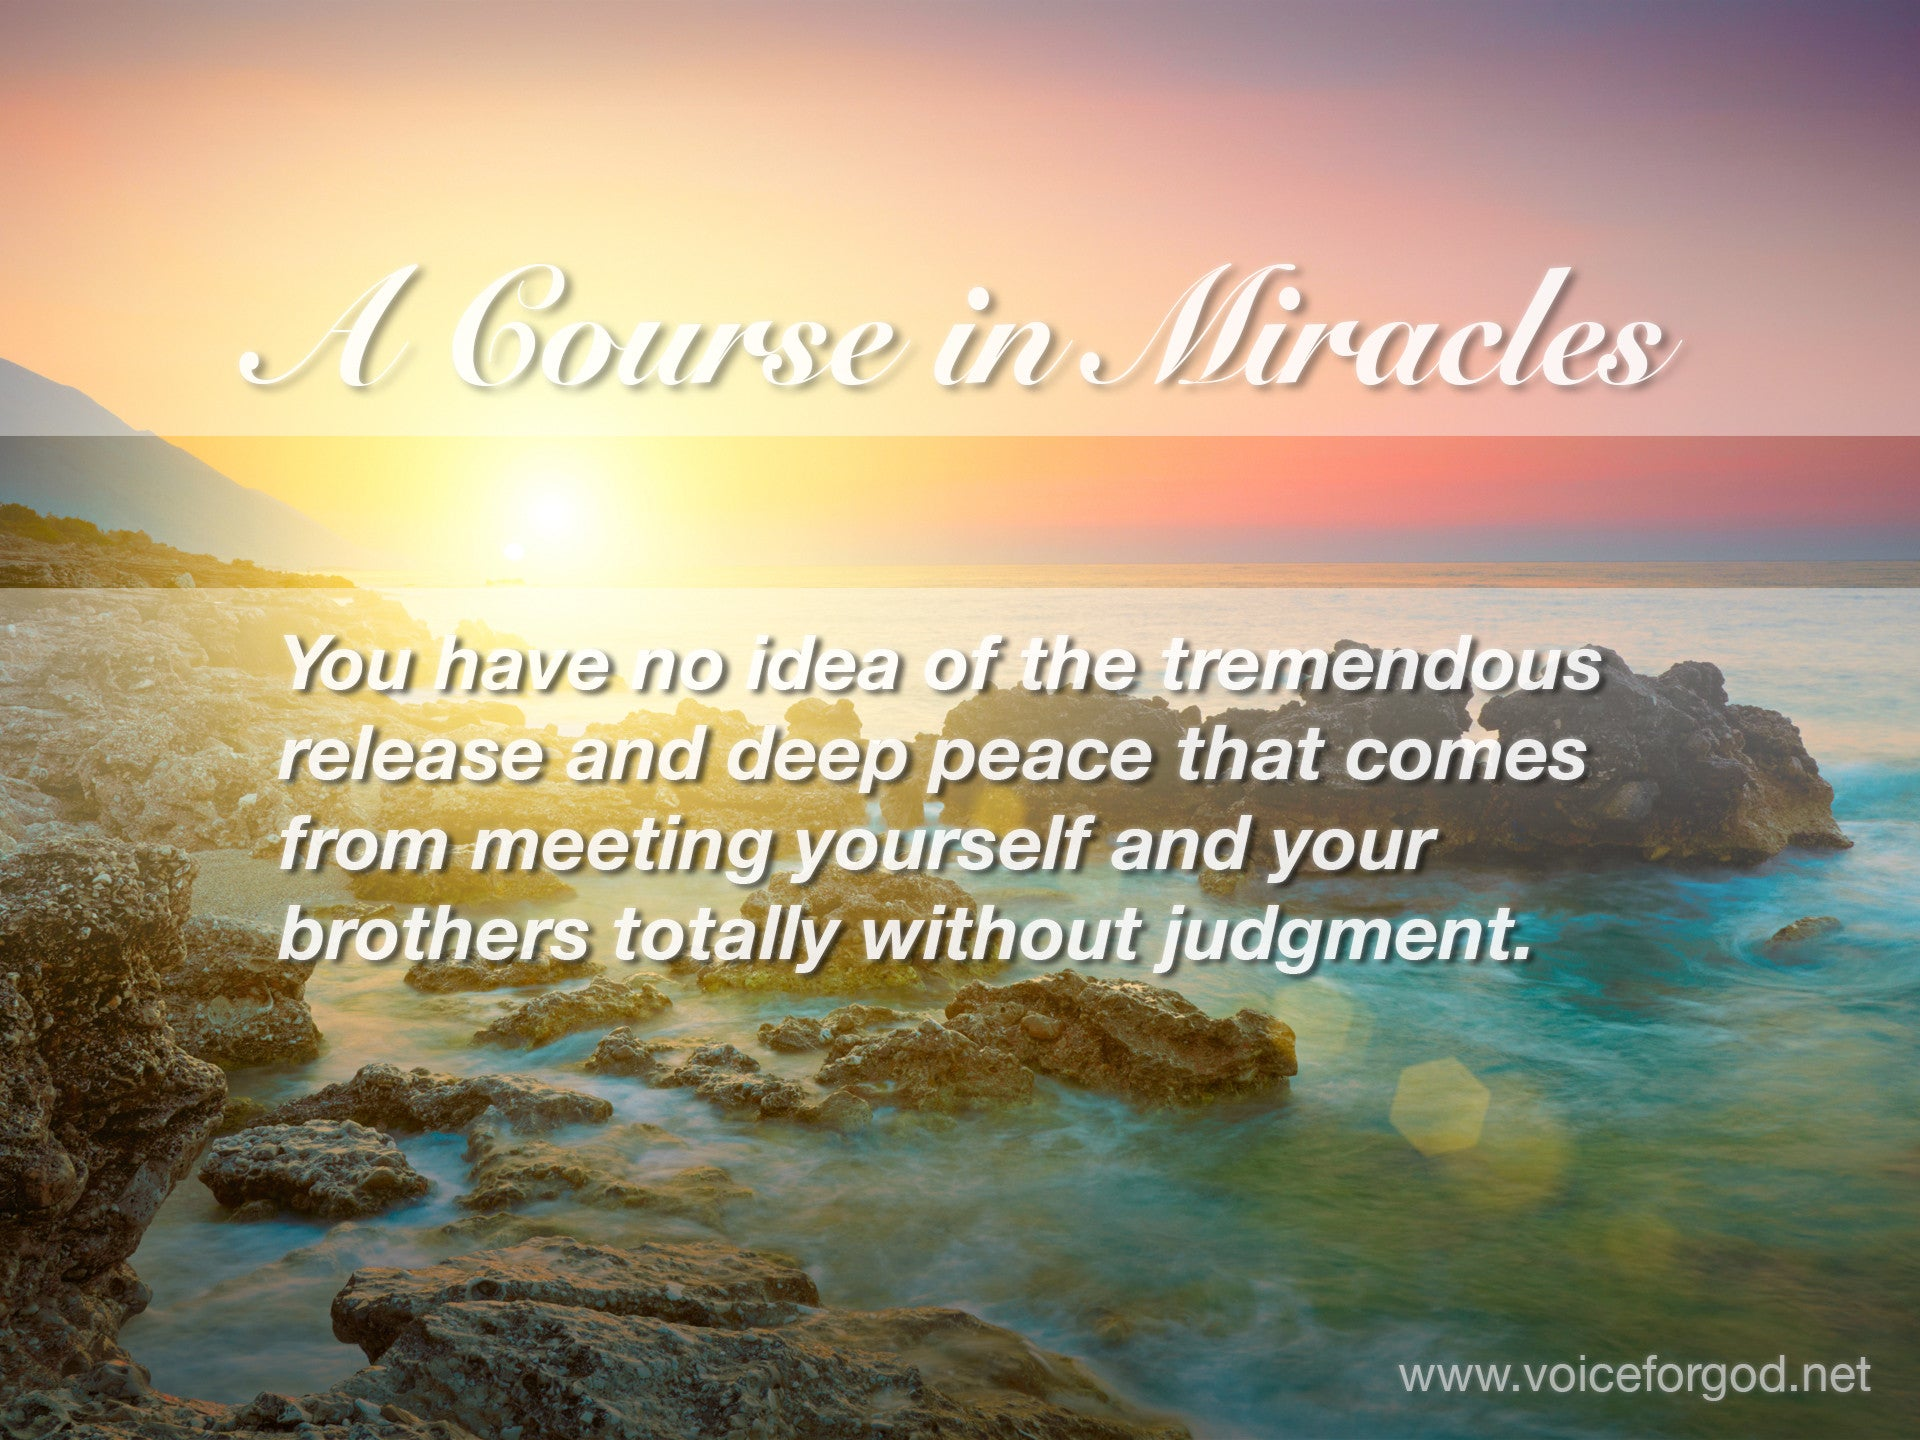 ACIM Quote 0819 A Course in Miracles Quotes